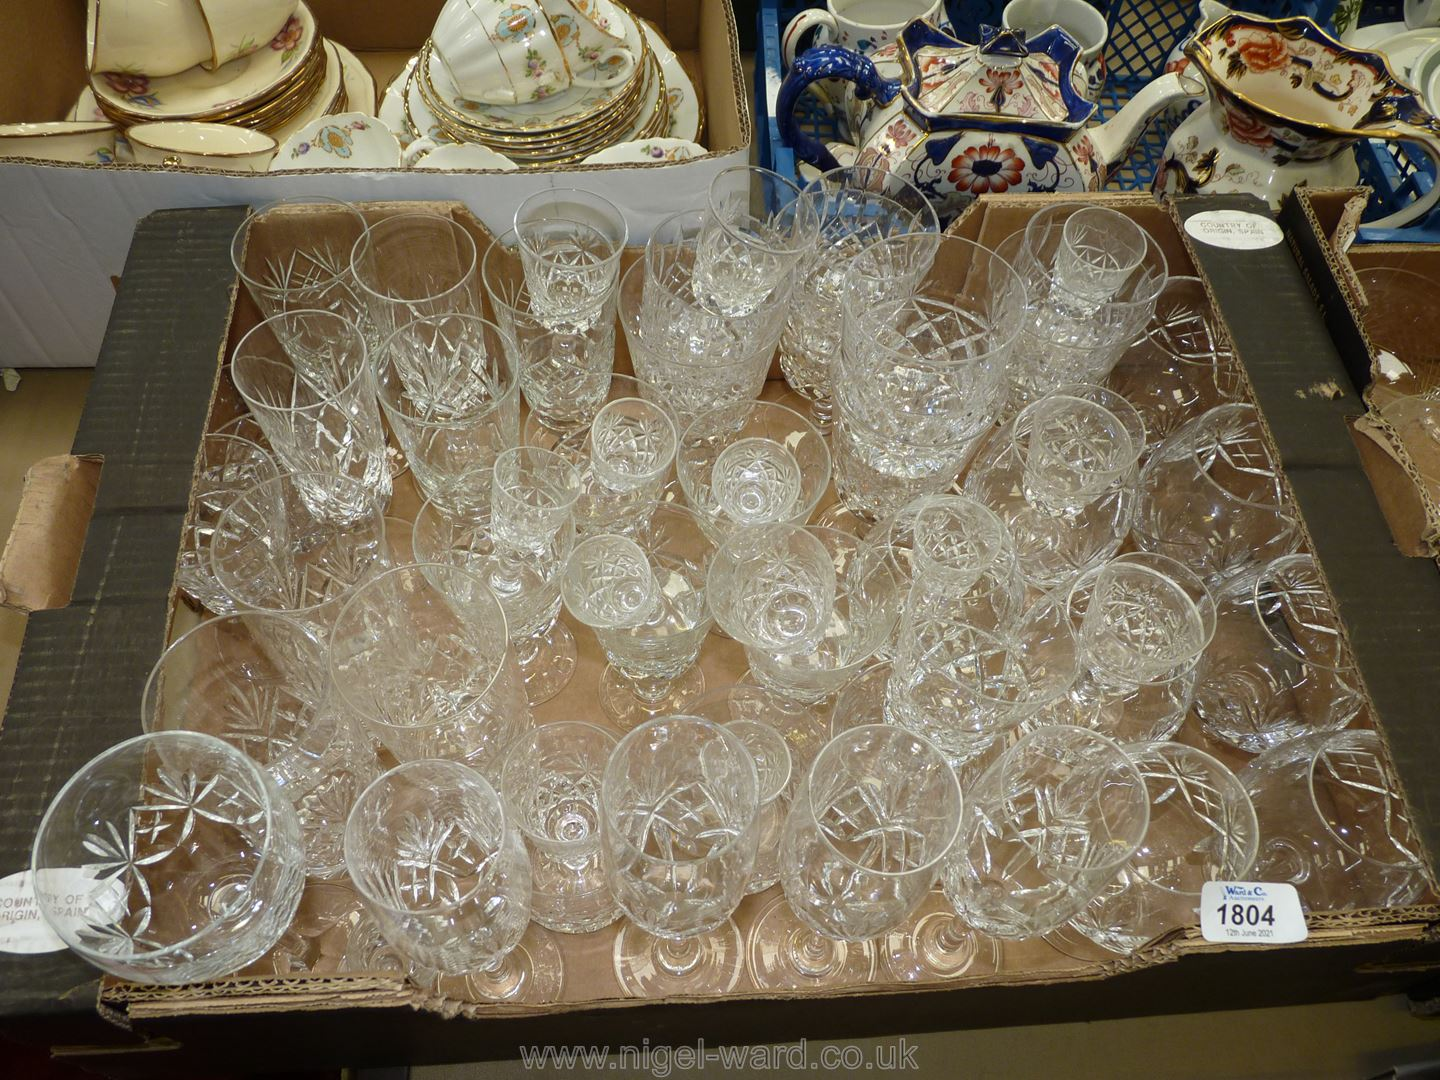 A good quantity of cut glasses including Royal Brierley brandy glasses and champagne flutes,